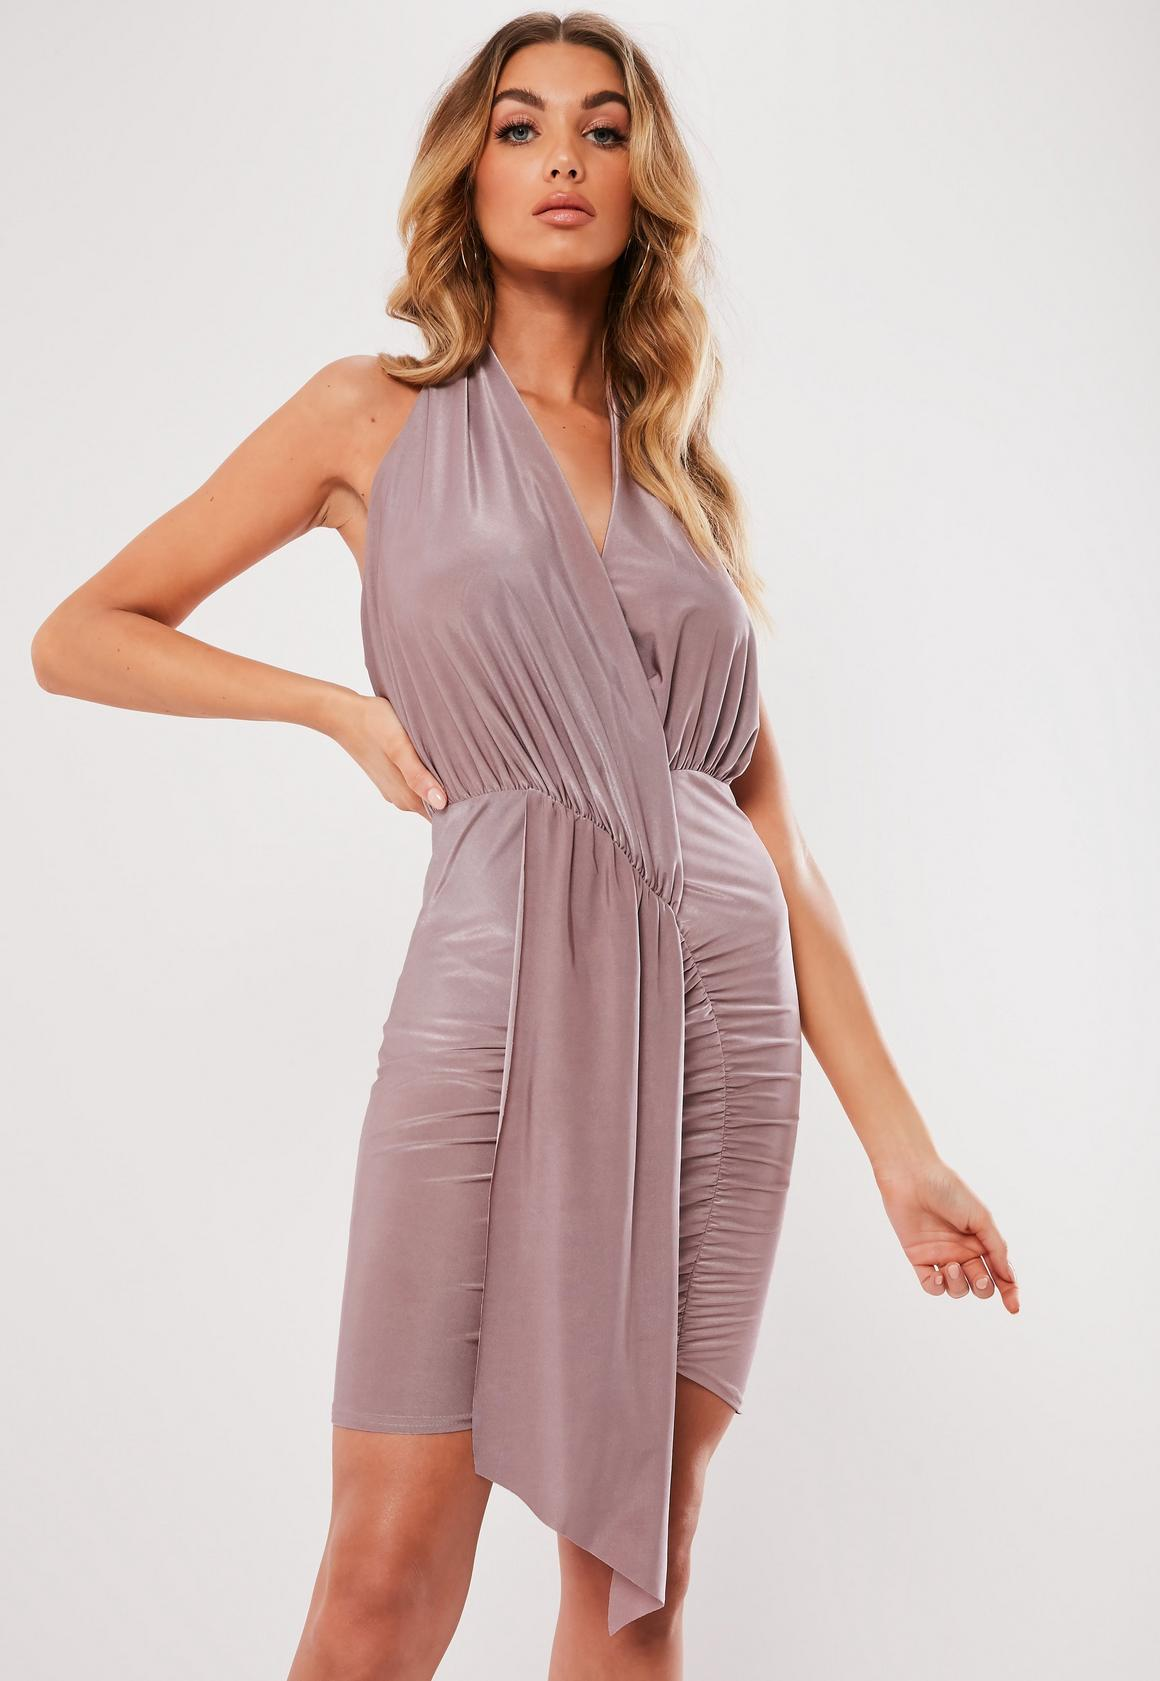 Missguided - robe dos-nu courte tissu drappé lilas - 1